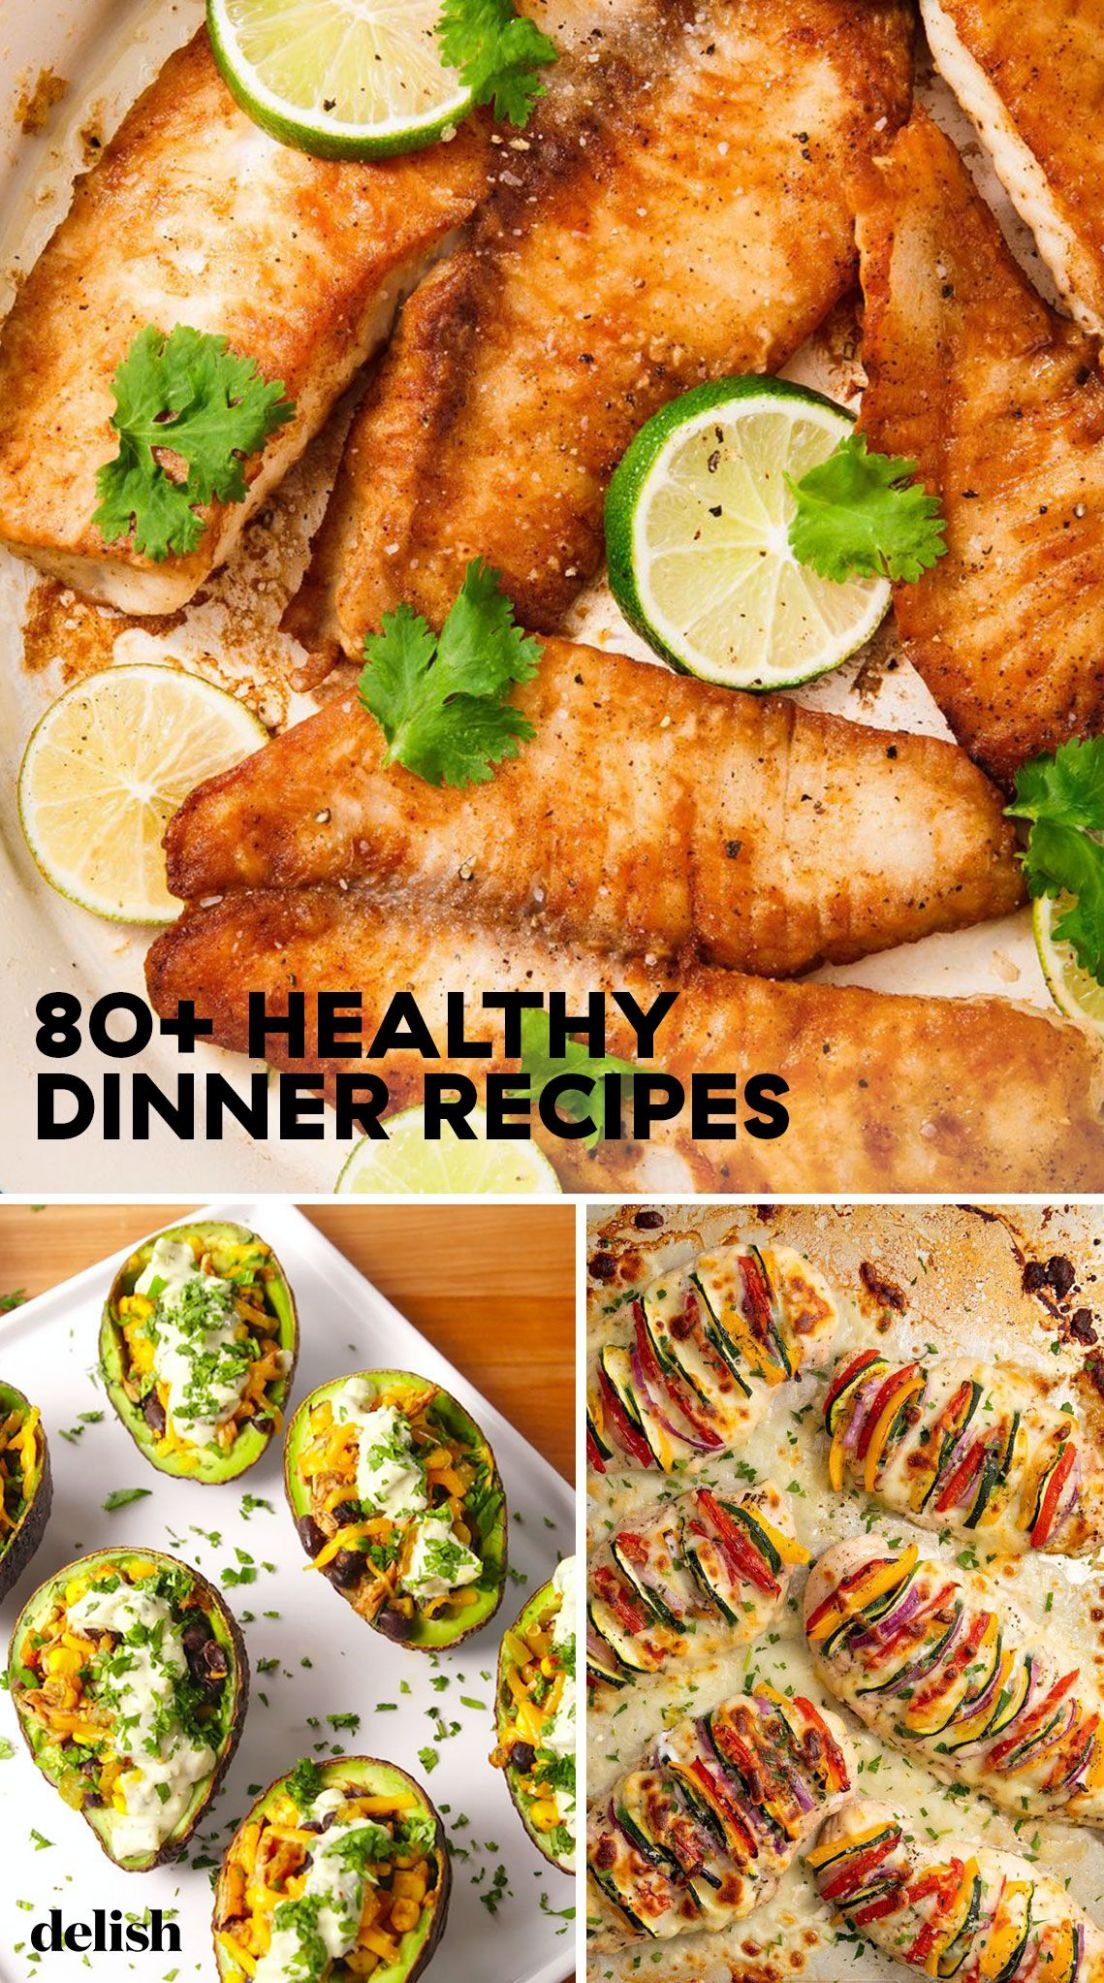 8+ Easy Healthy Dinner Ideas - Best Recipes for Healthy Dinners - Easy Recipes Dinner Healthy